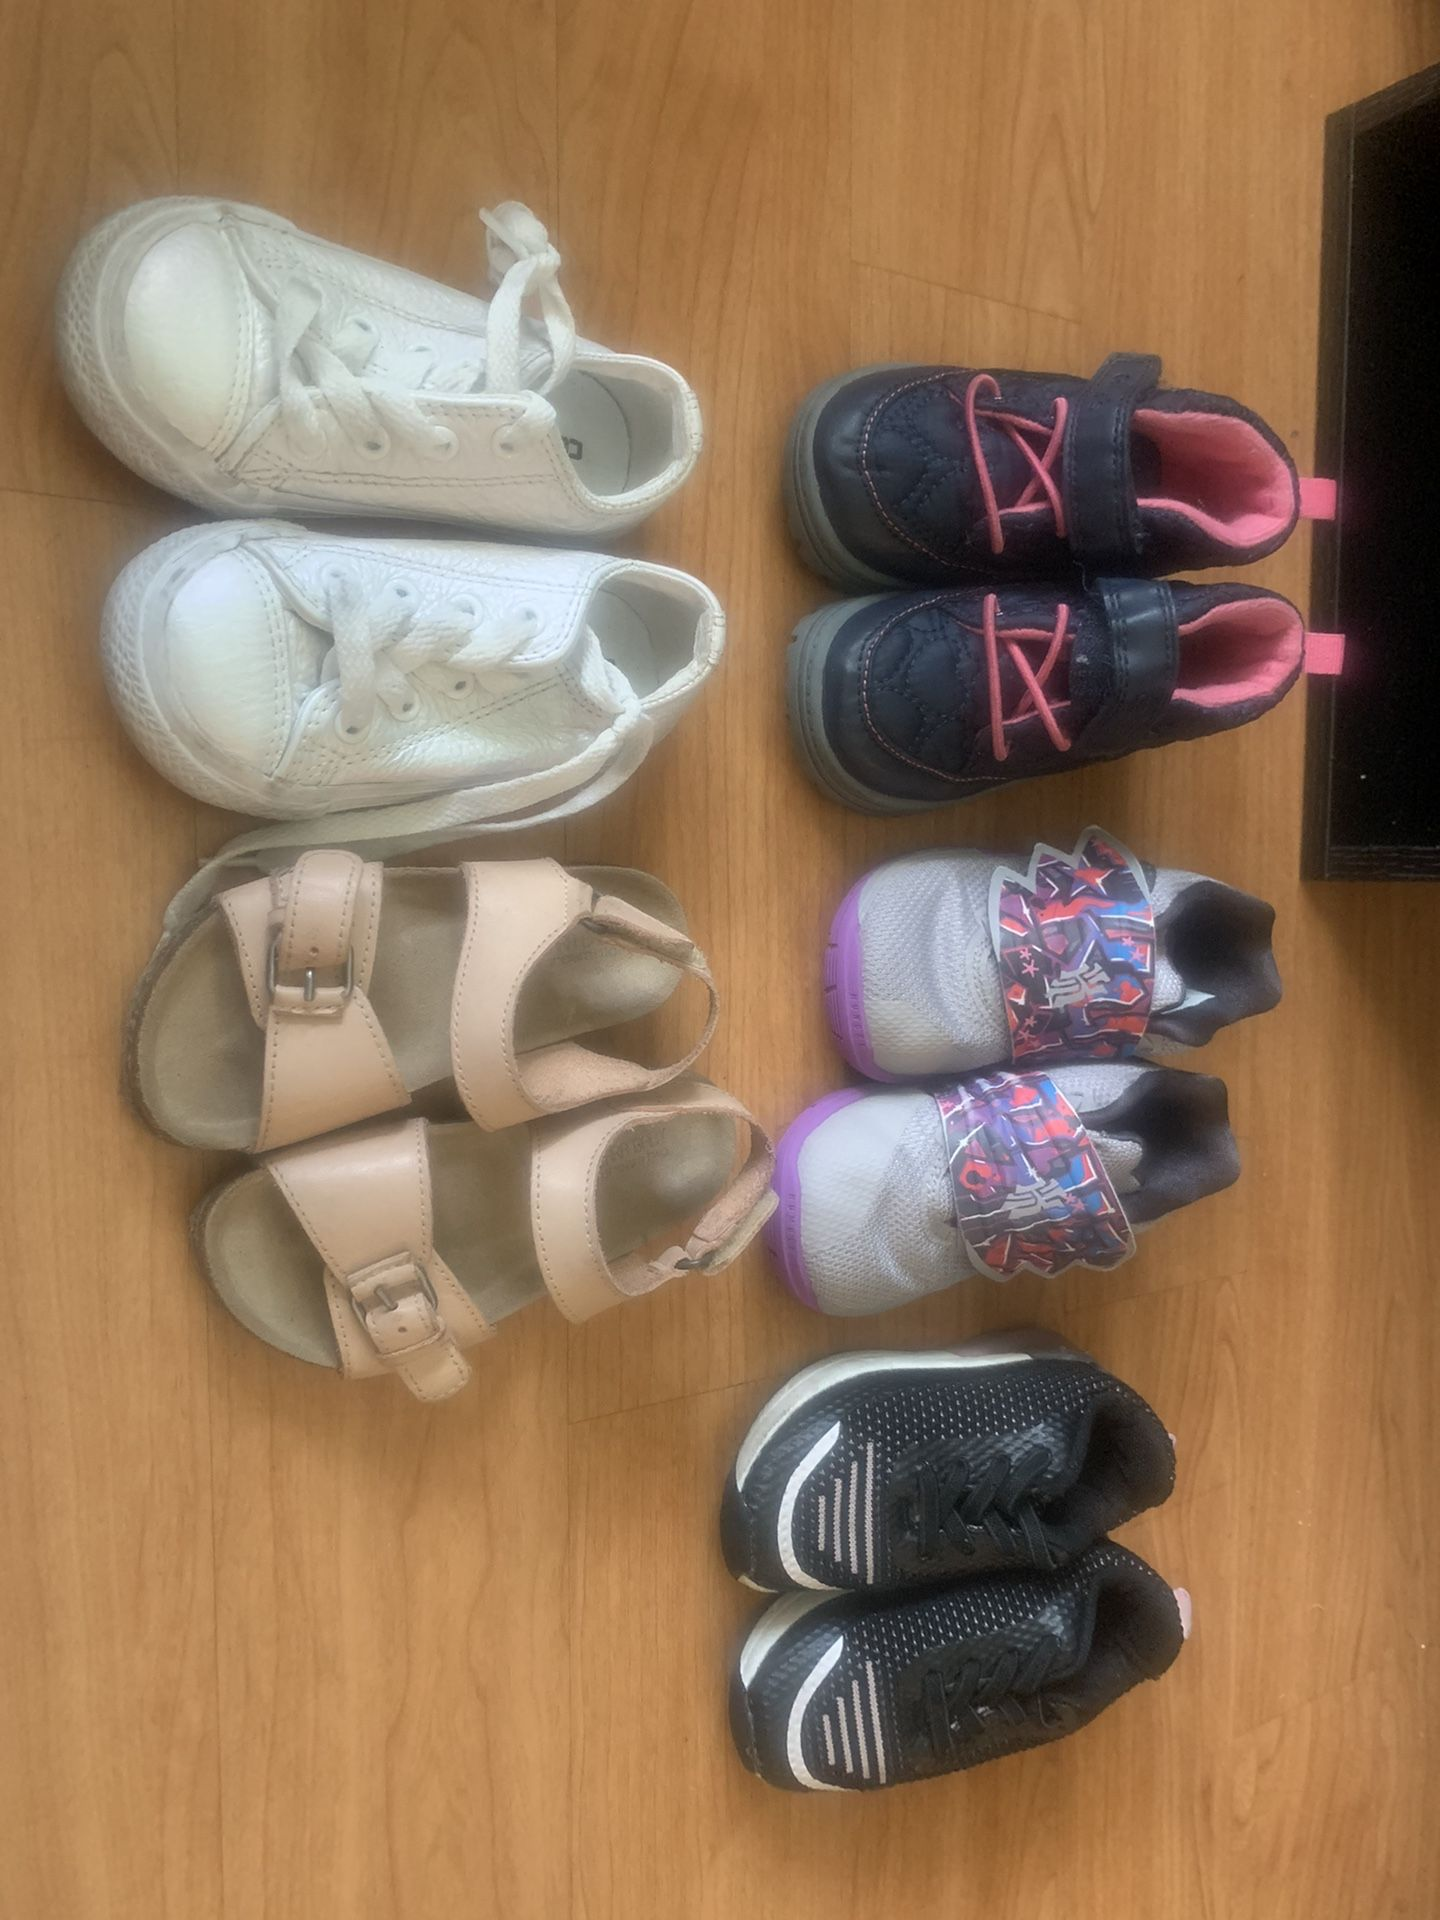 Size 6M Shoes/Sneakers/Boots